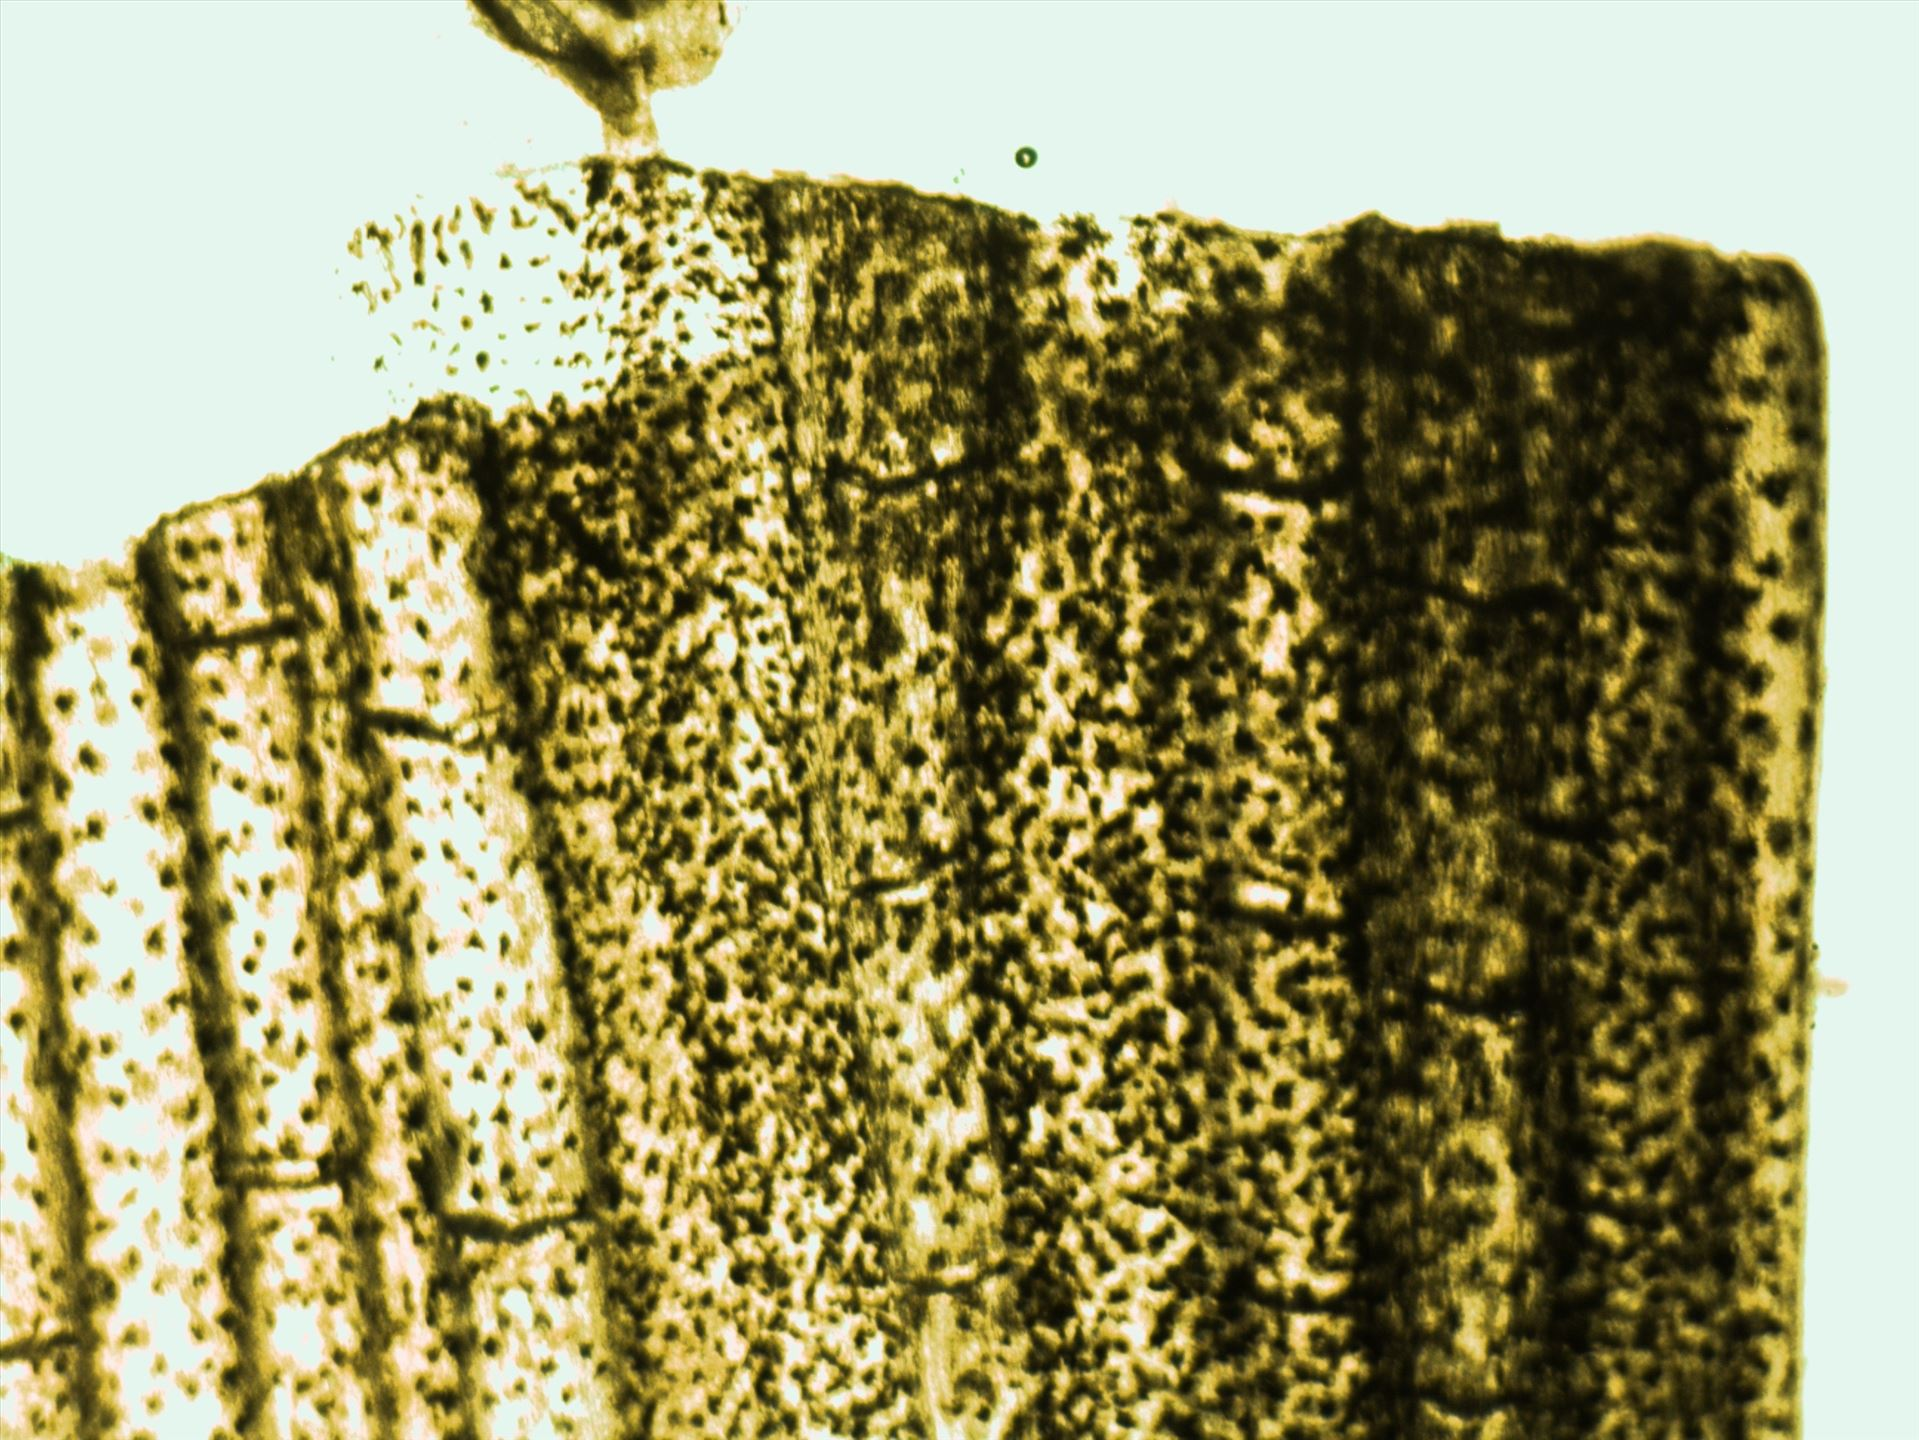 fish x200.jpg -  by Allie Smith Photography